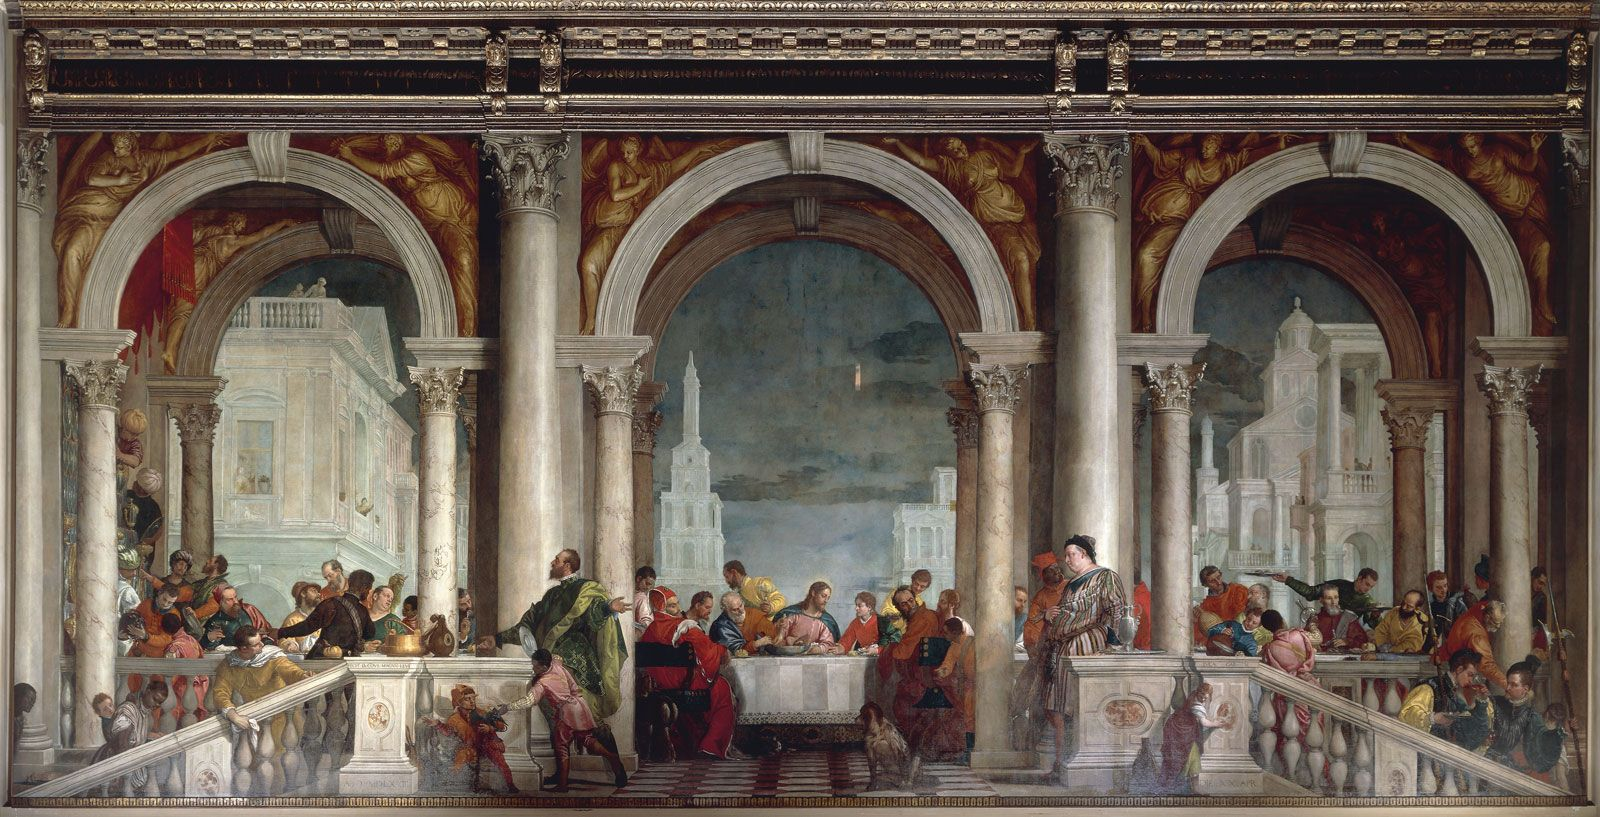 PAOLO VERONESE, c. 1528 - 1588: The Feast in the House of ...